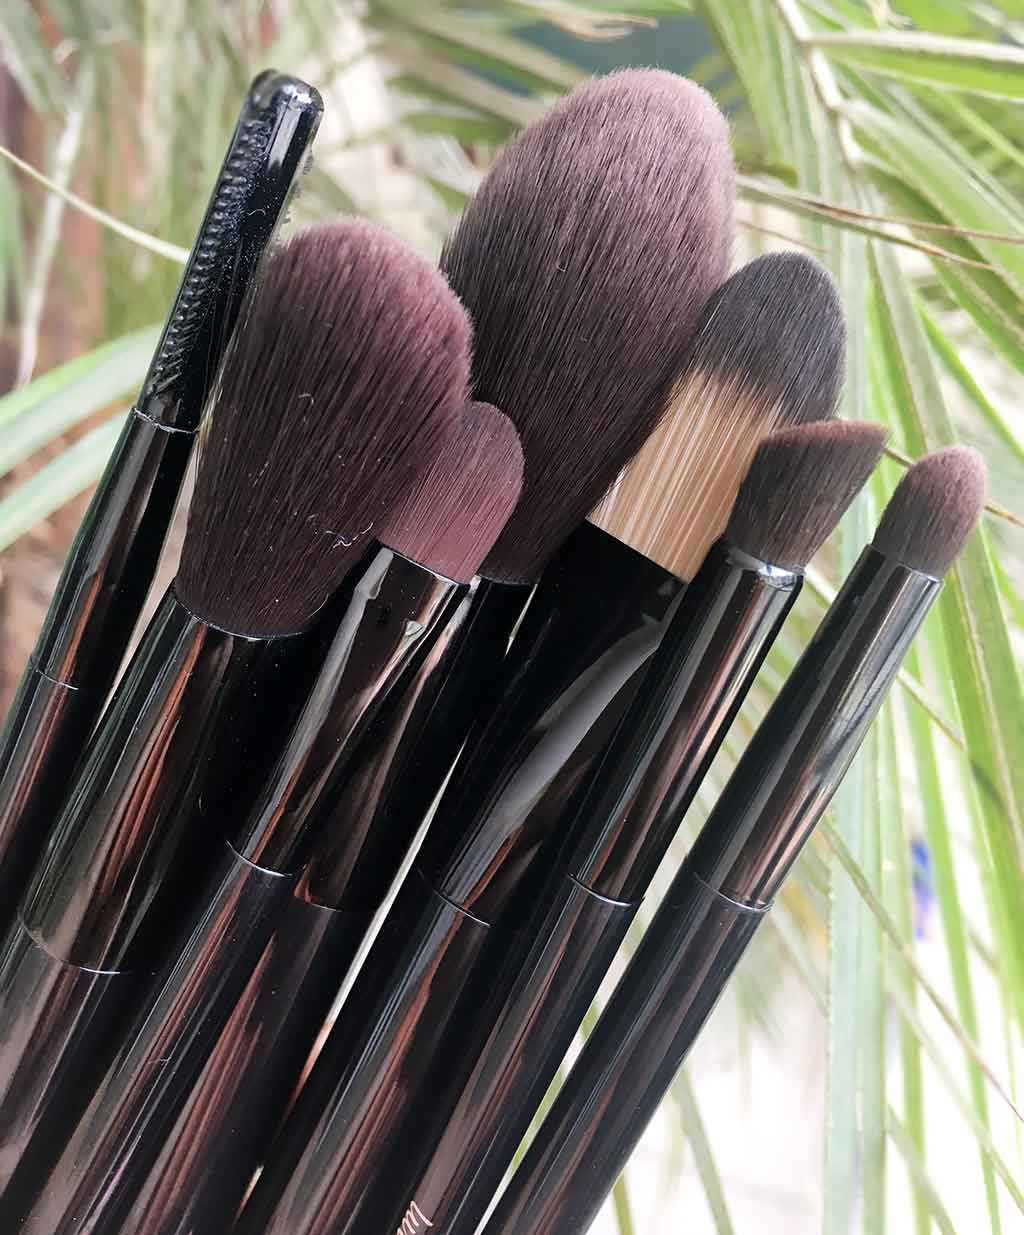 LureSenses Makeup Brushes